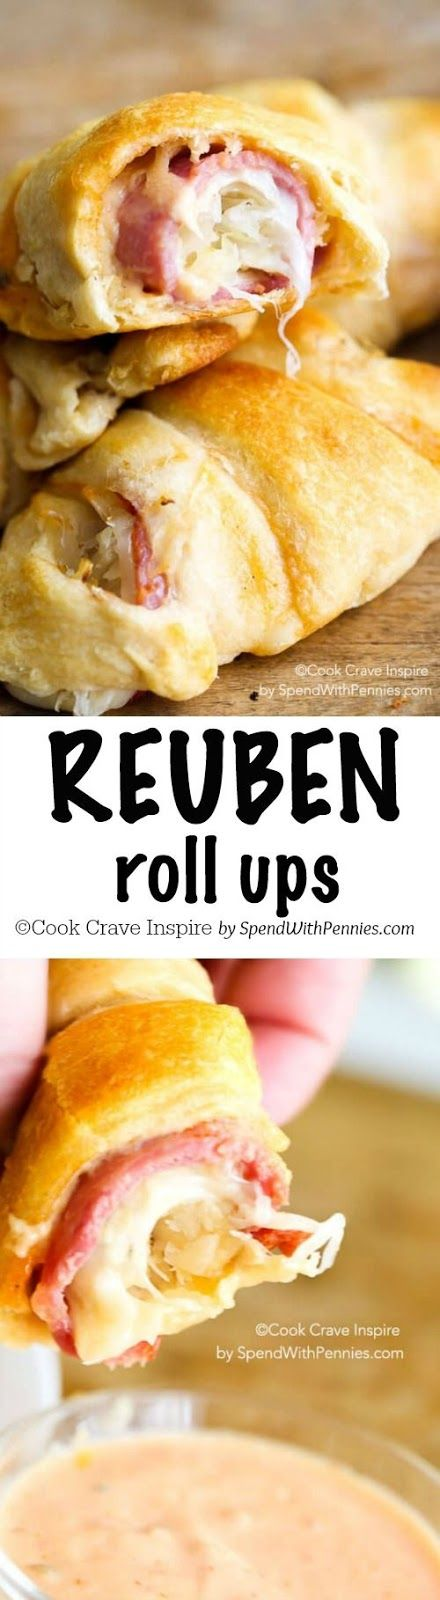 Ingredients   1 package crescent rolls, (8 count)   ½ cup thousand island dressing   4 oz corned beef   4 oz swiss cheese   1 cup sauer...